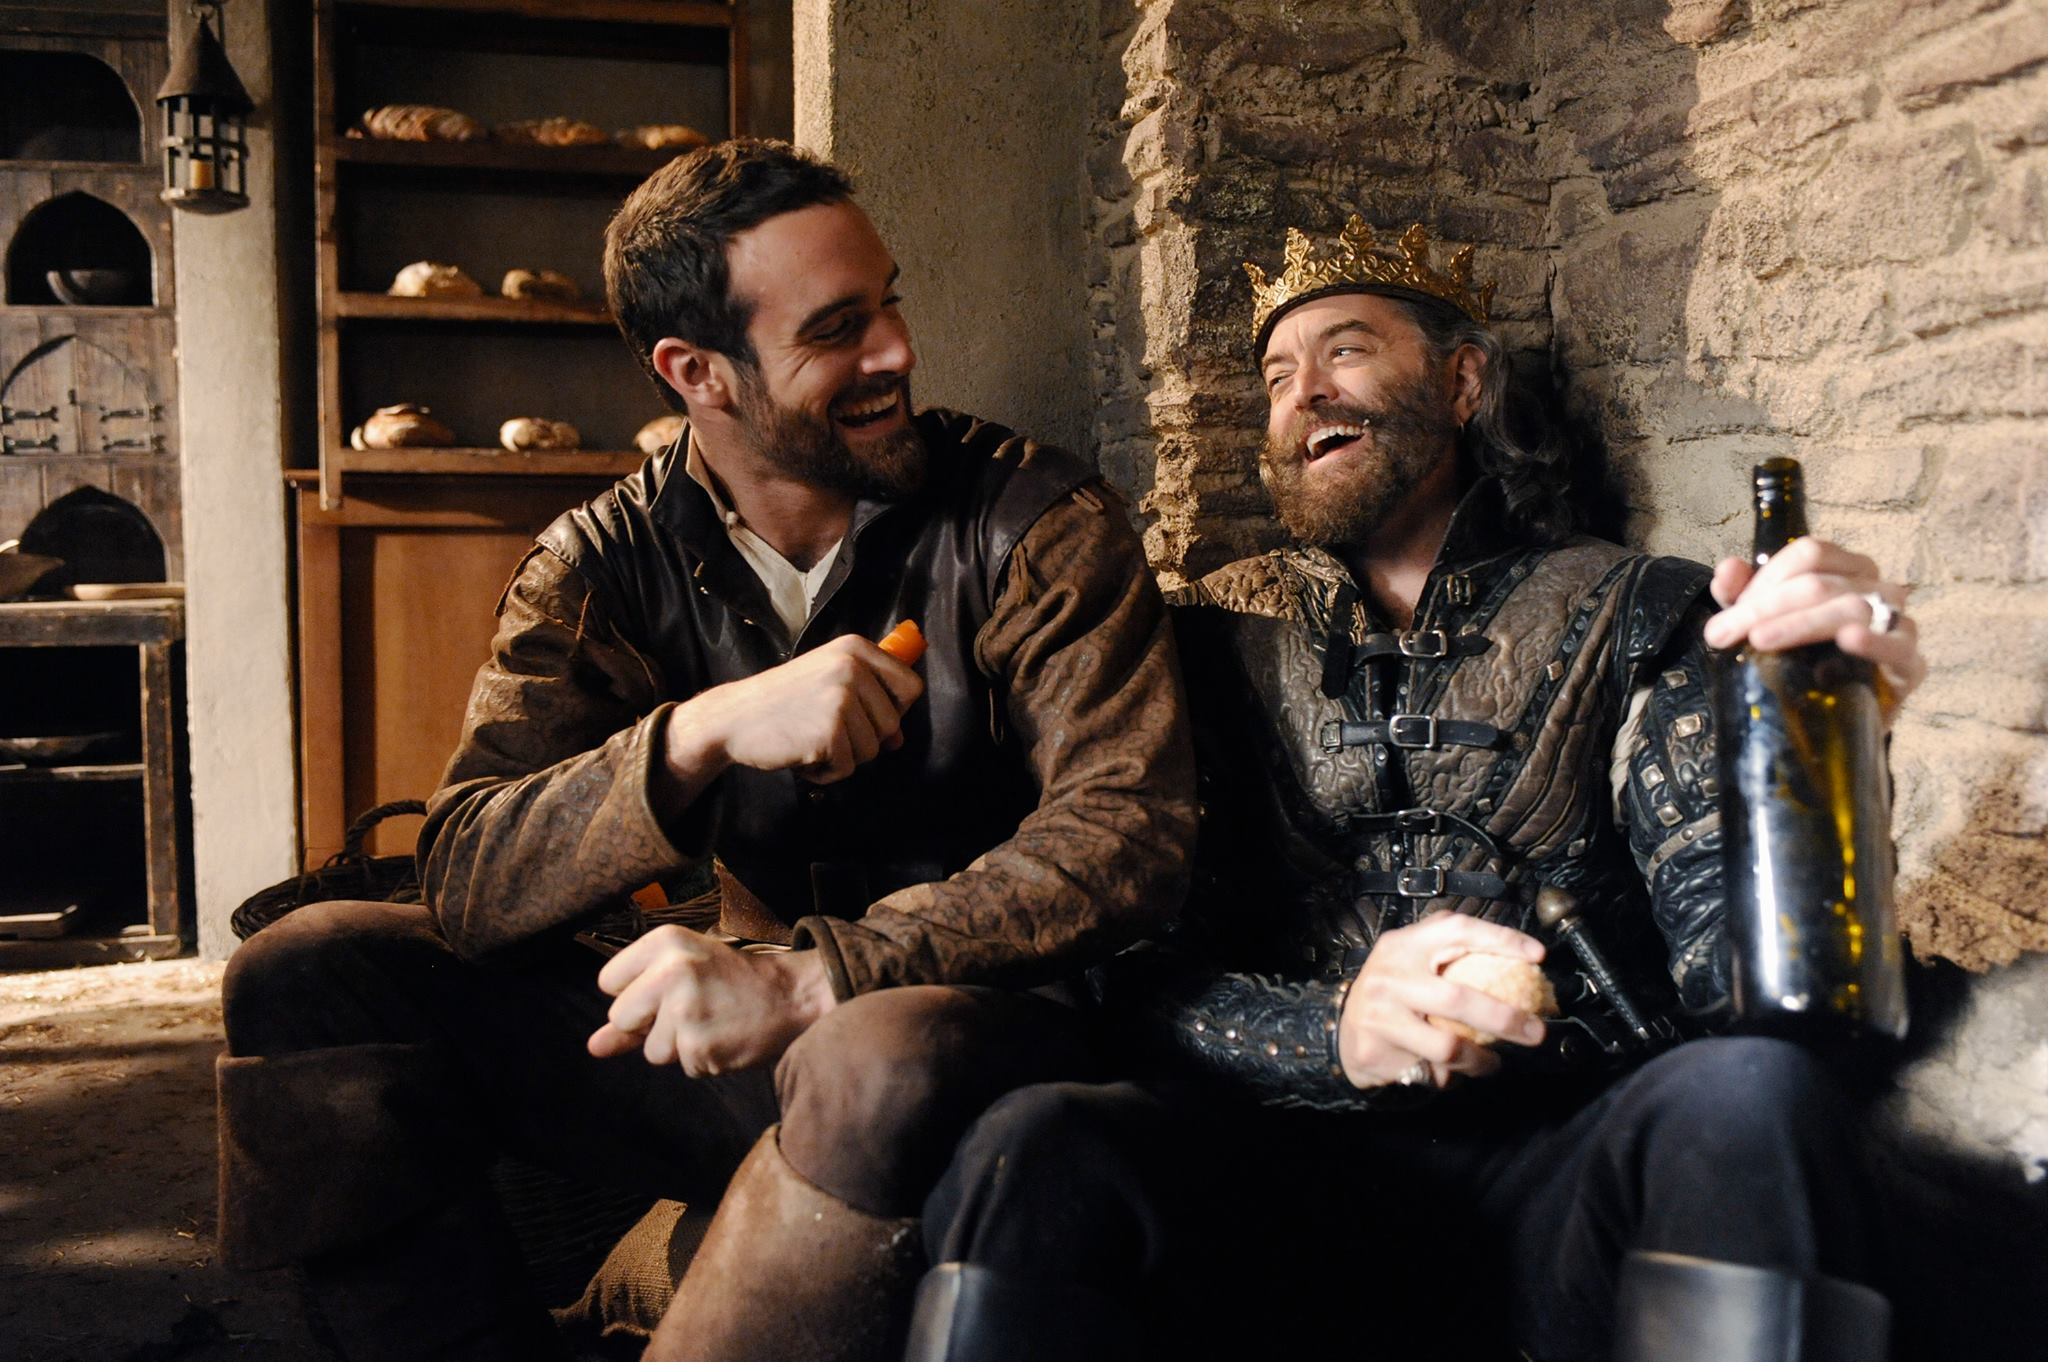 Galavant - 01x08 - It's All in the Executions